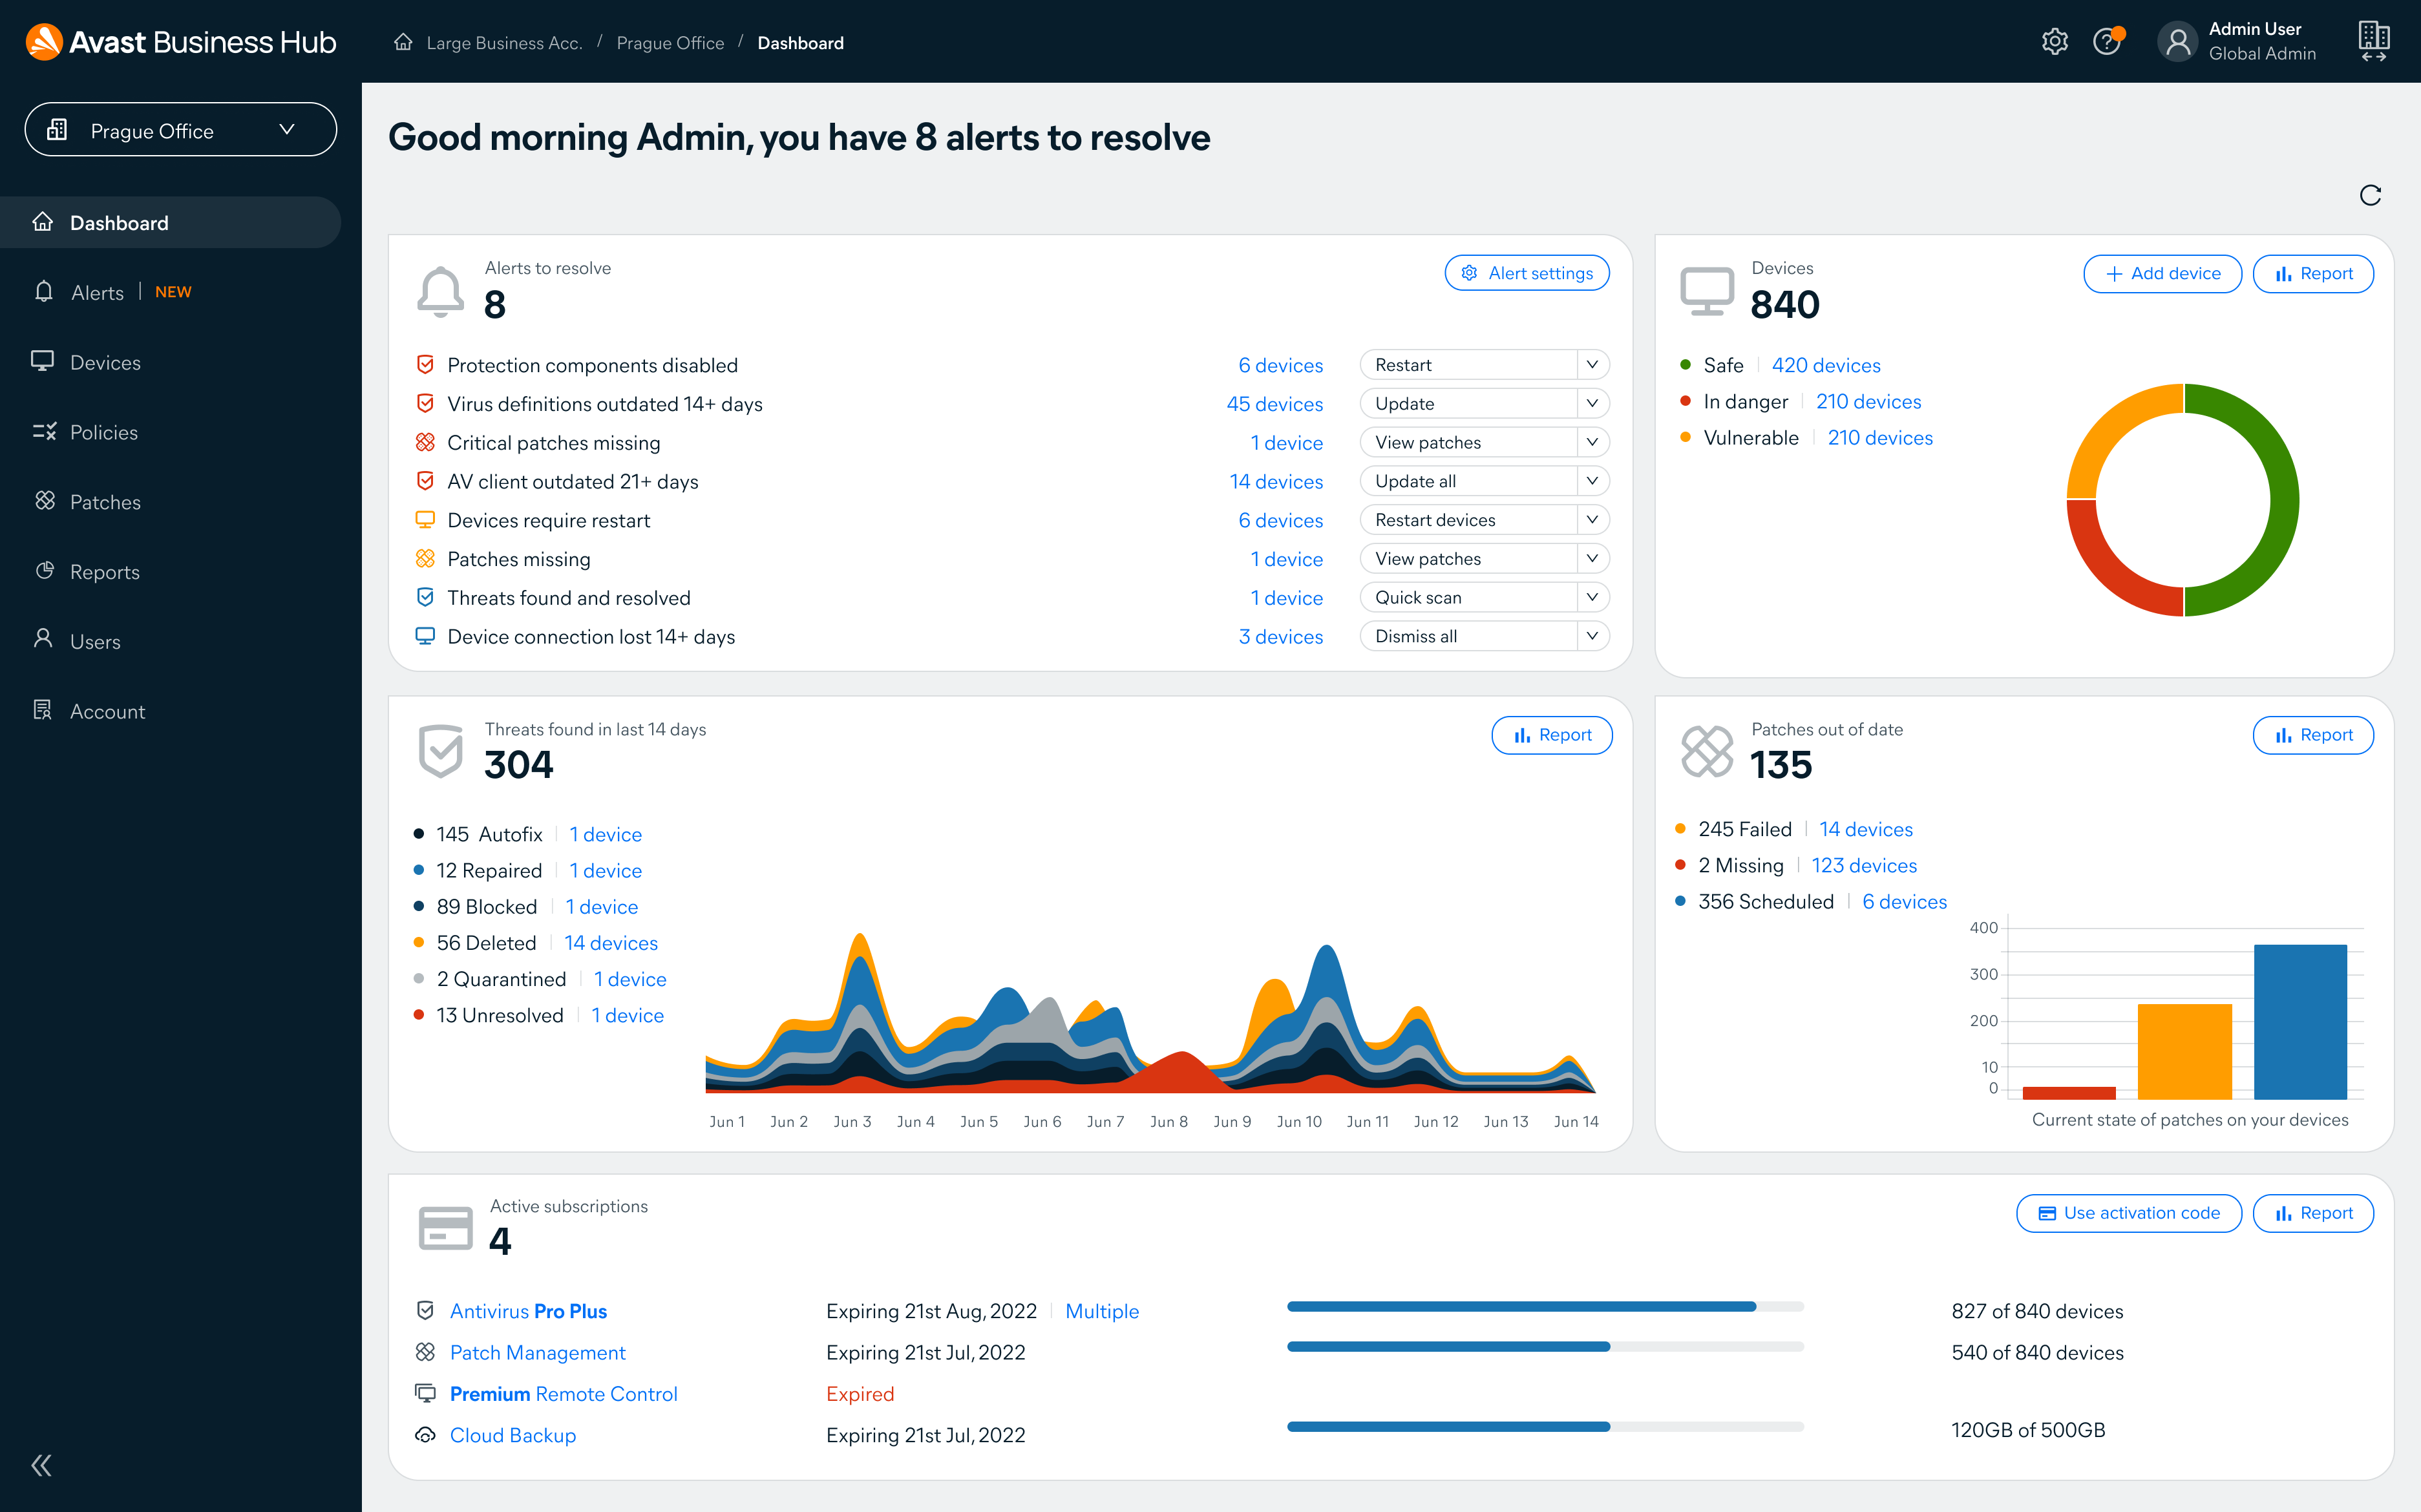 Easily manage all your Avast Business security solutions from one streamlined dashboard